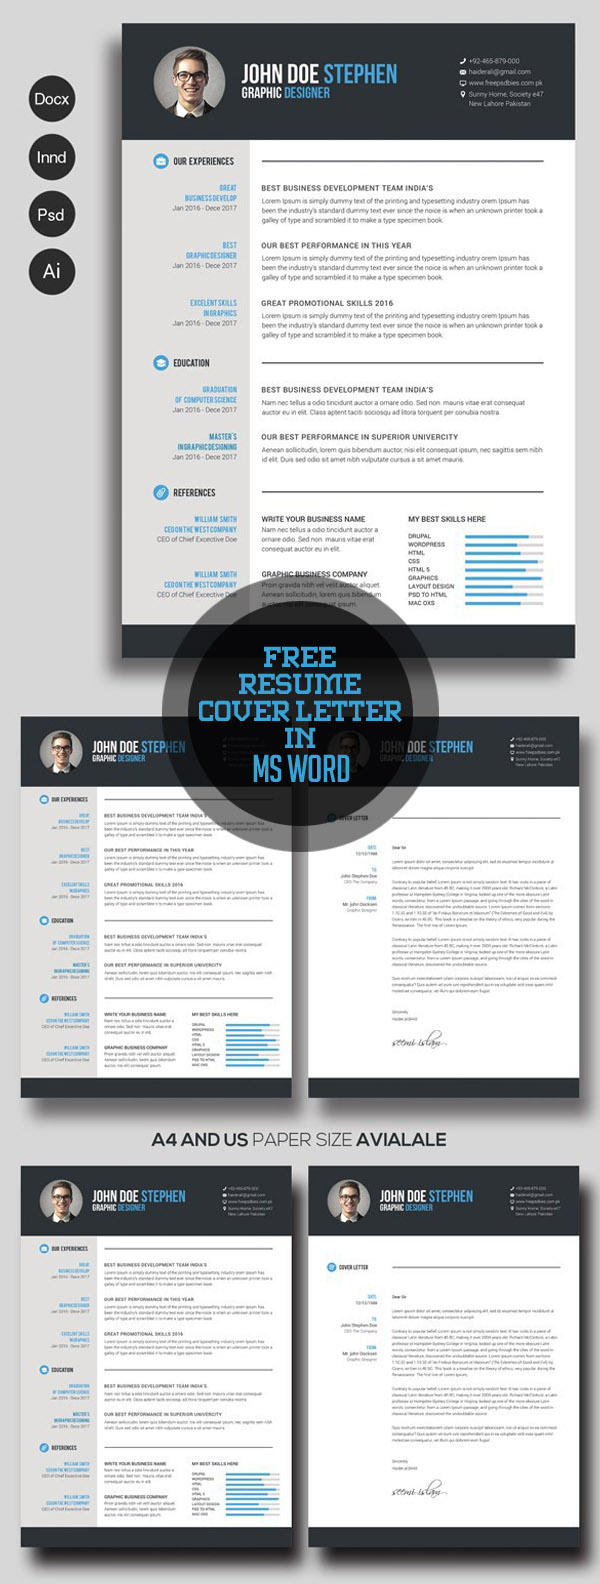 21 fresh free resume templates with cover letter idevie for Microsoft word graphic design